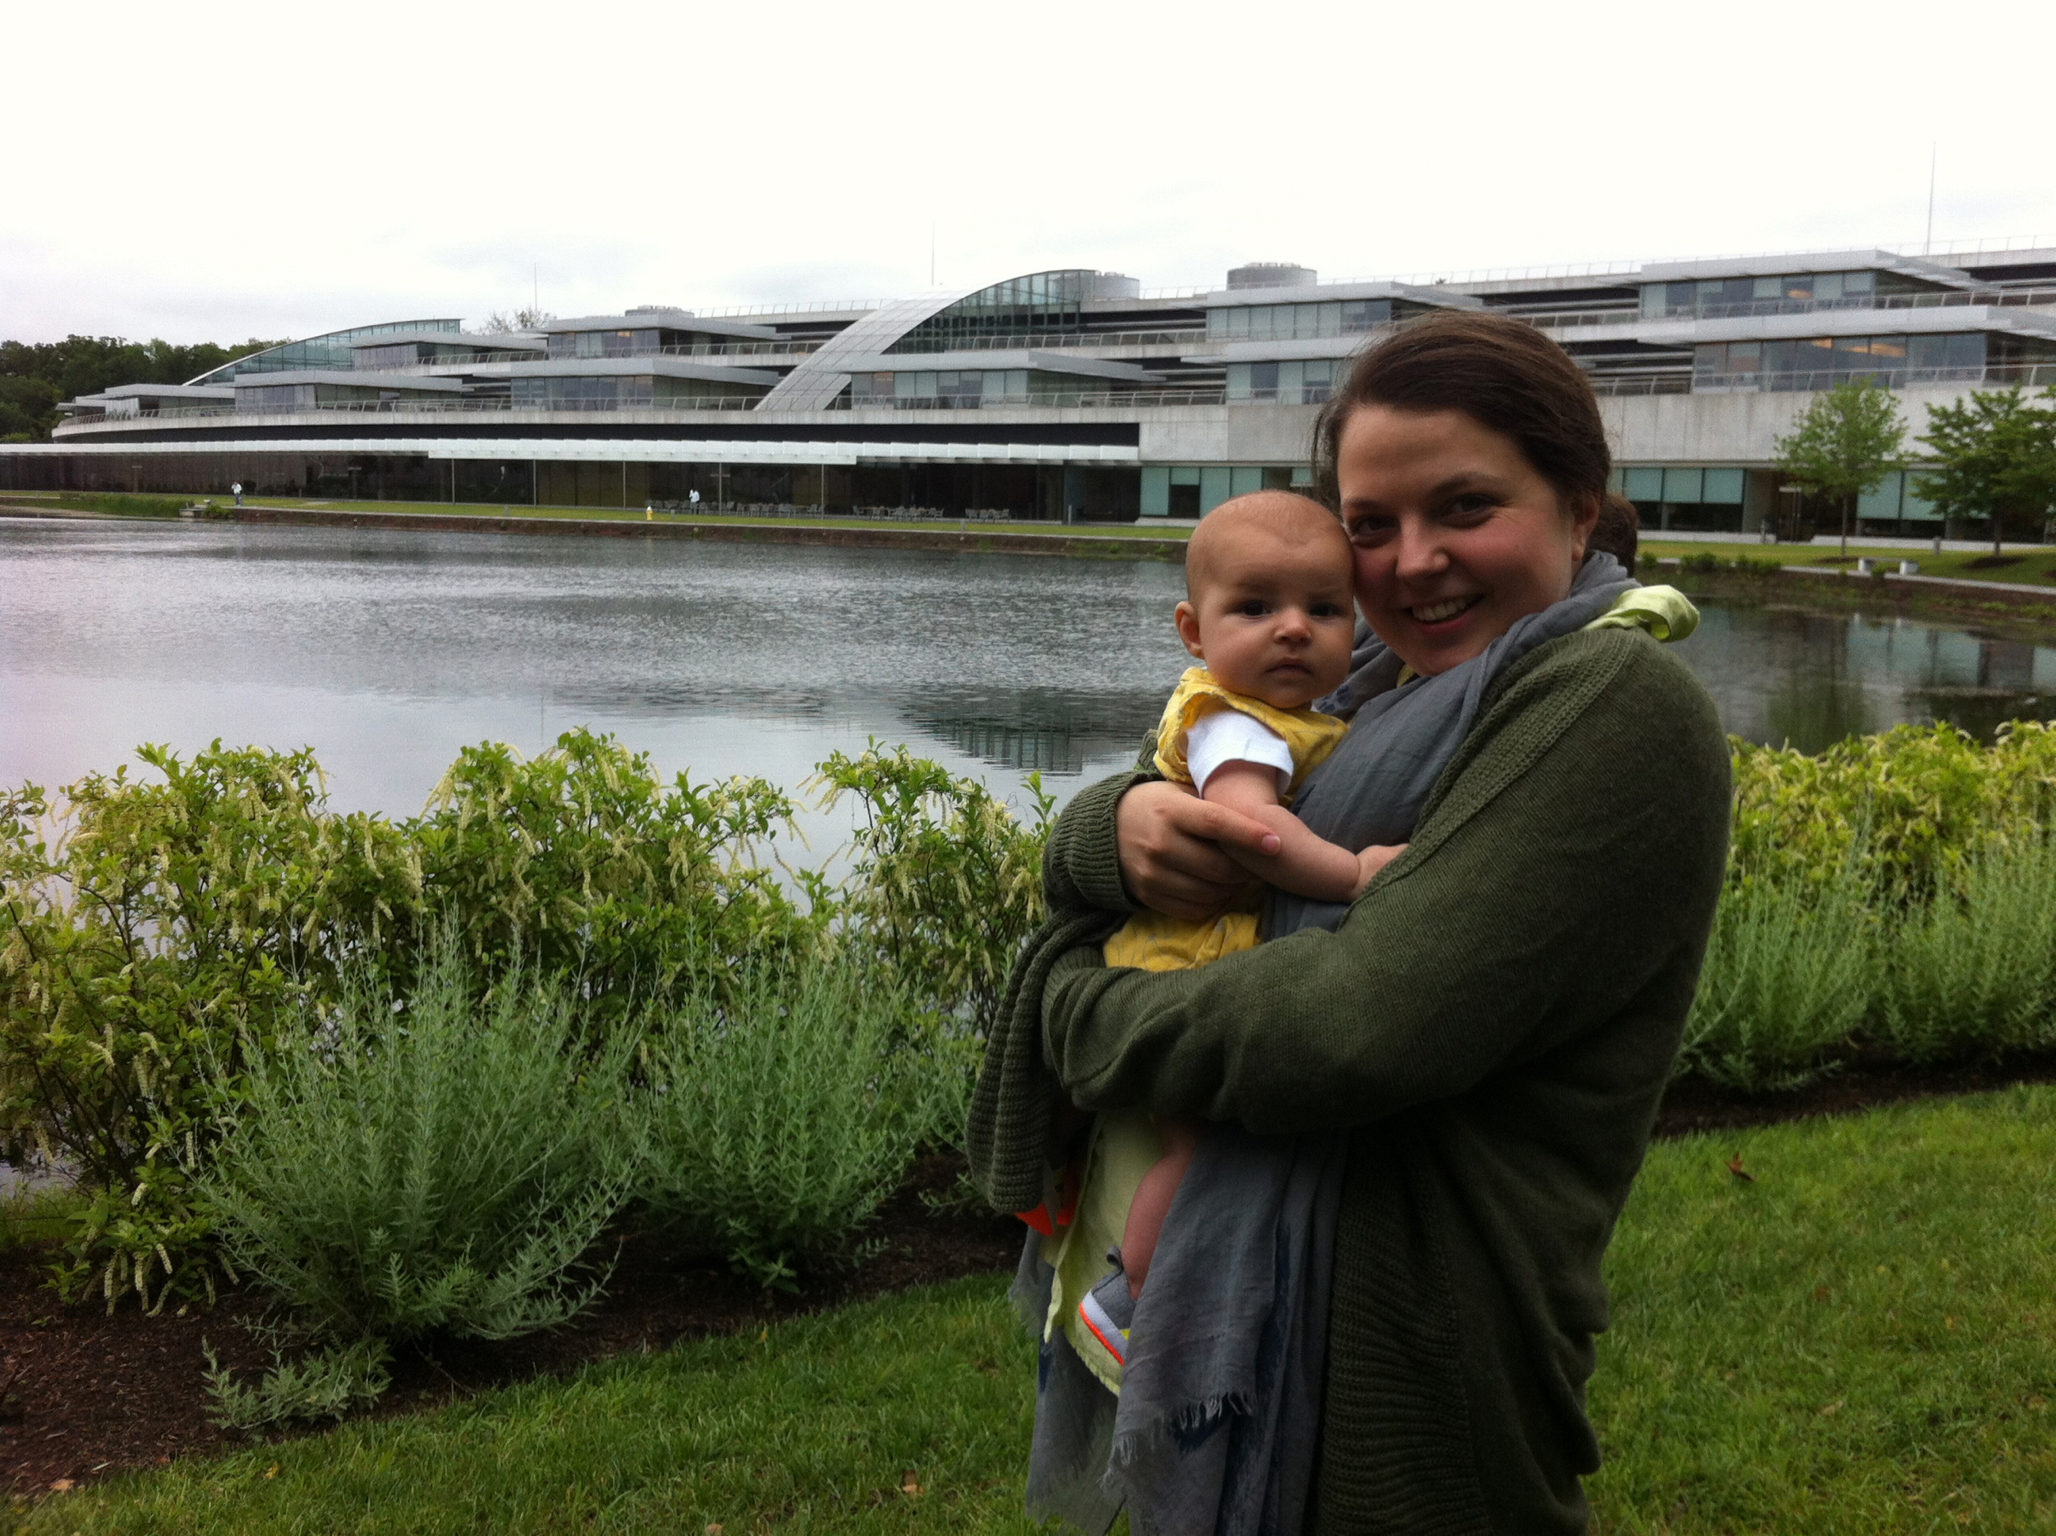 Hanging out at Janelia